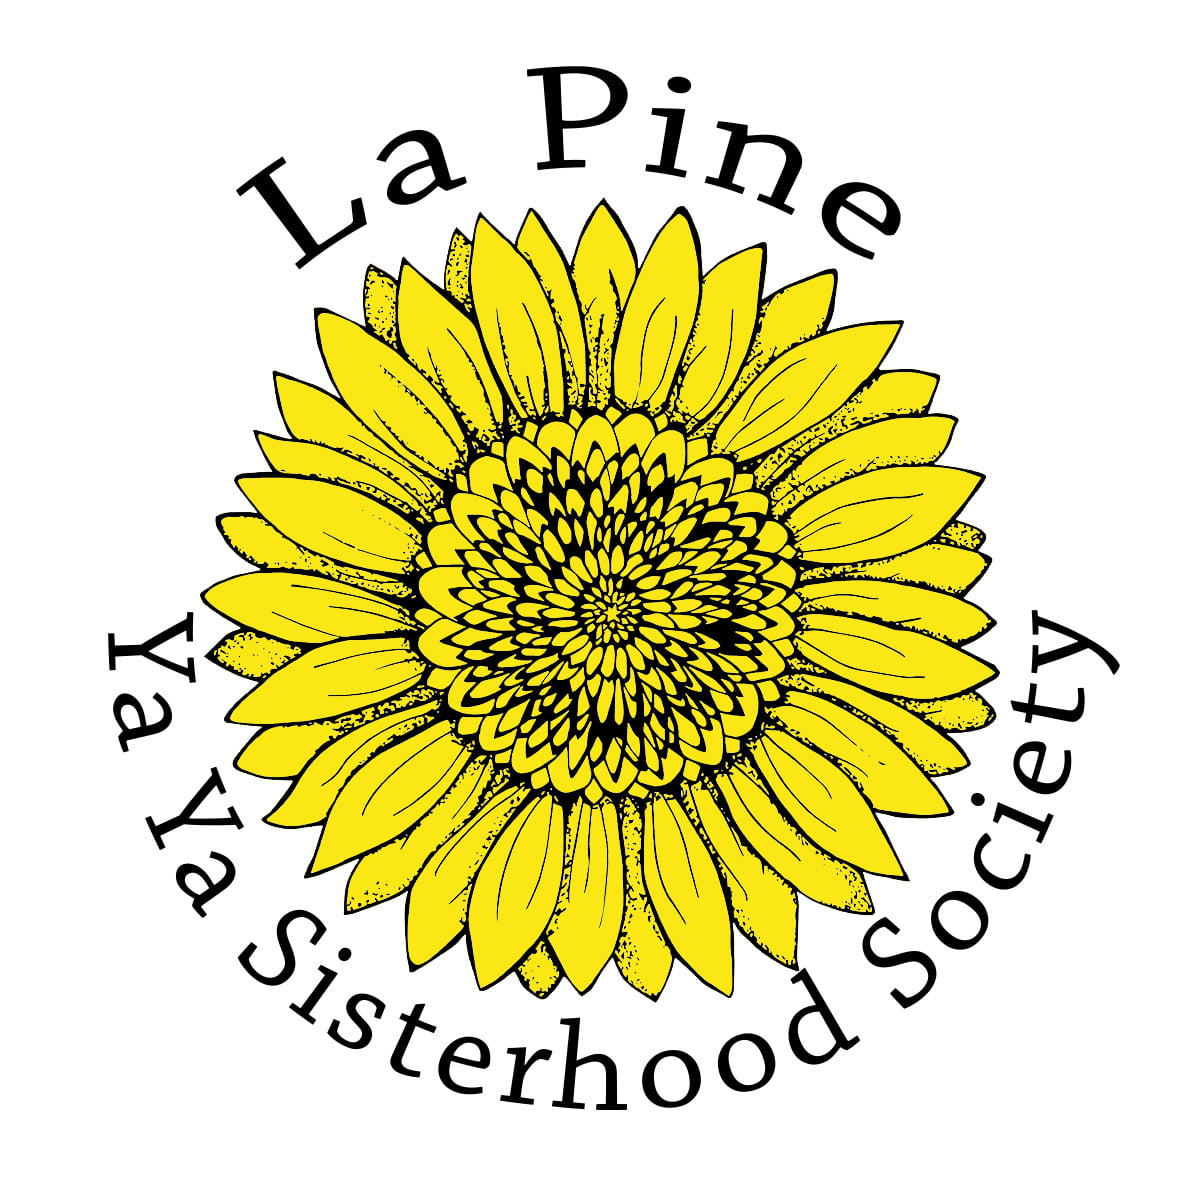 La Pine Ya Ya Sisterhood Society